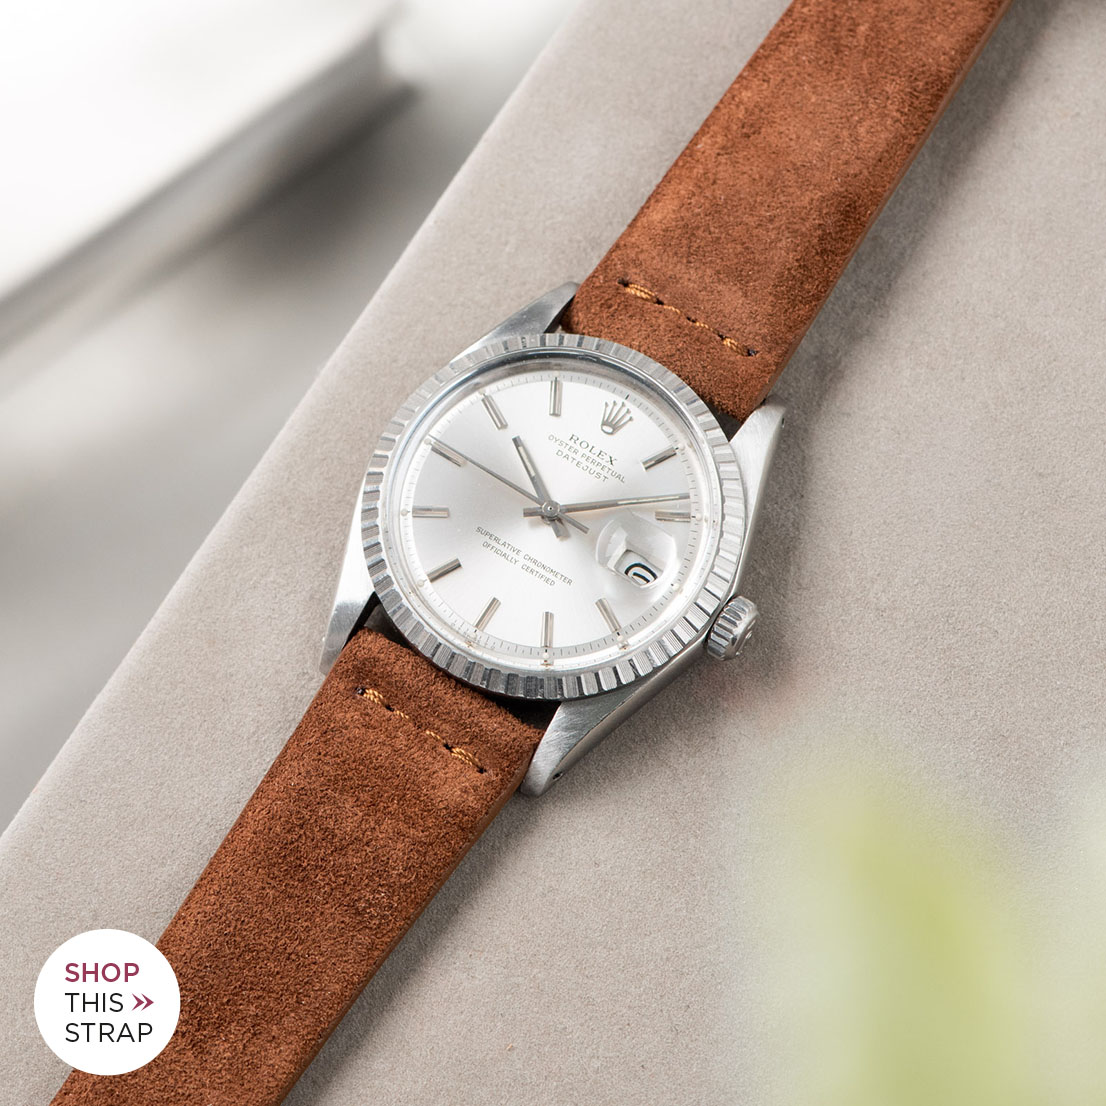 Bulang and sons_Strap Guide_Rolex Datejust Silverdial 1601 1603 1600 1630_COGNAC BROWN SILKY SUEDE LEATHER WATCH STRAP